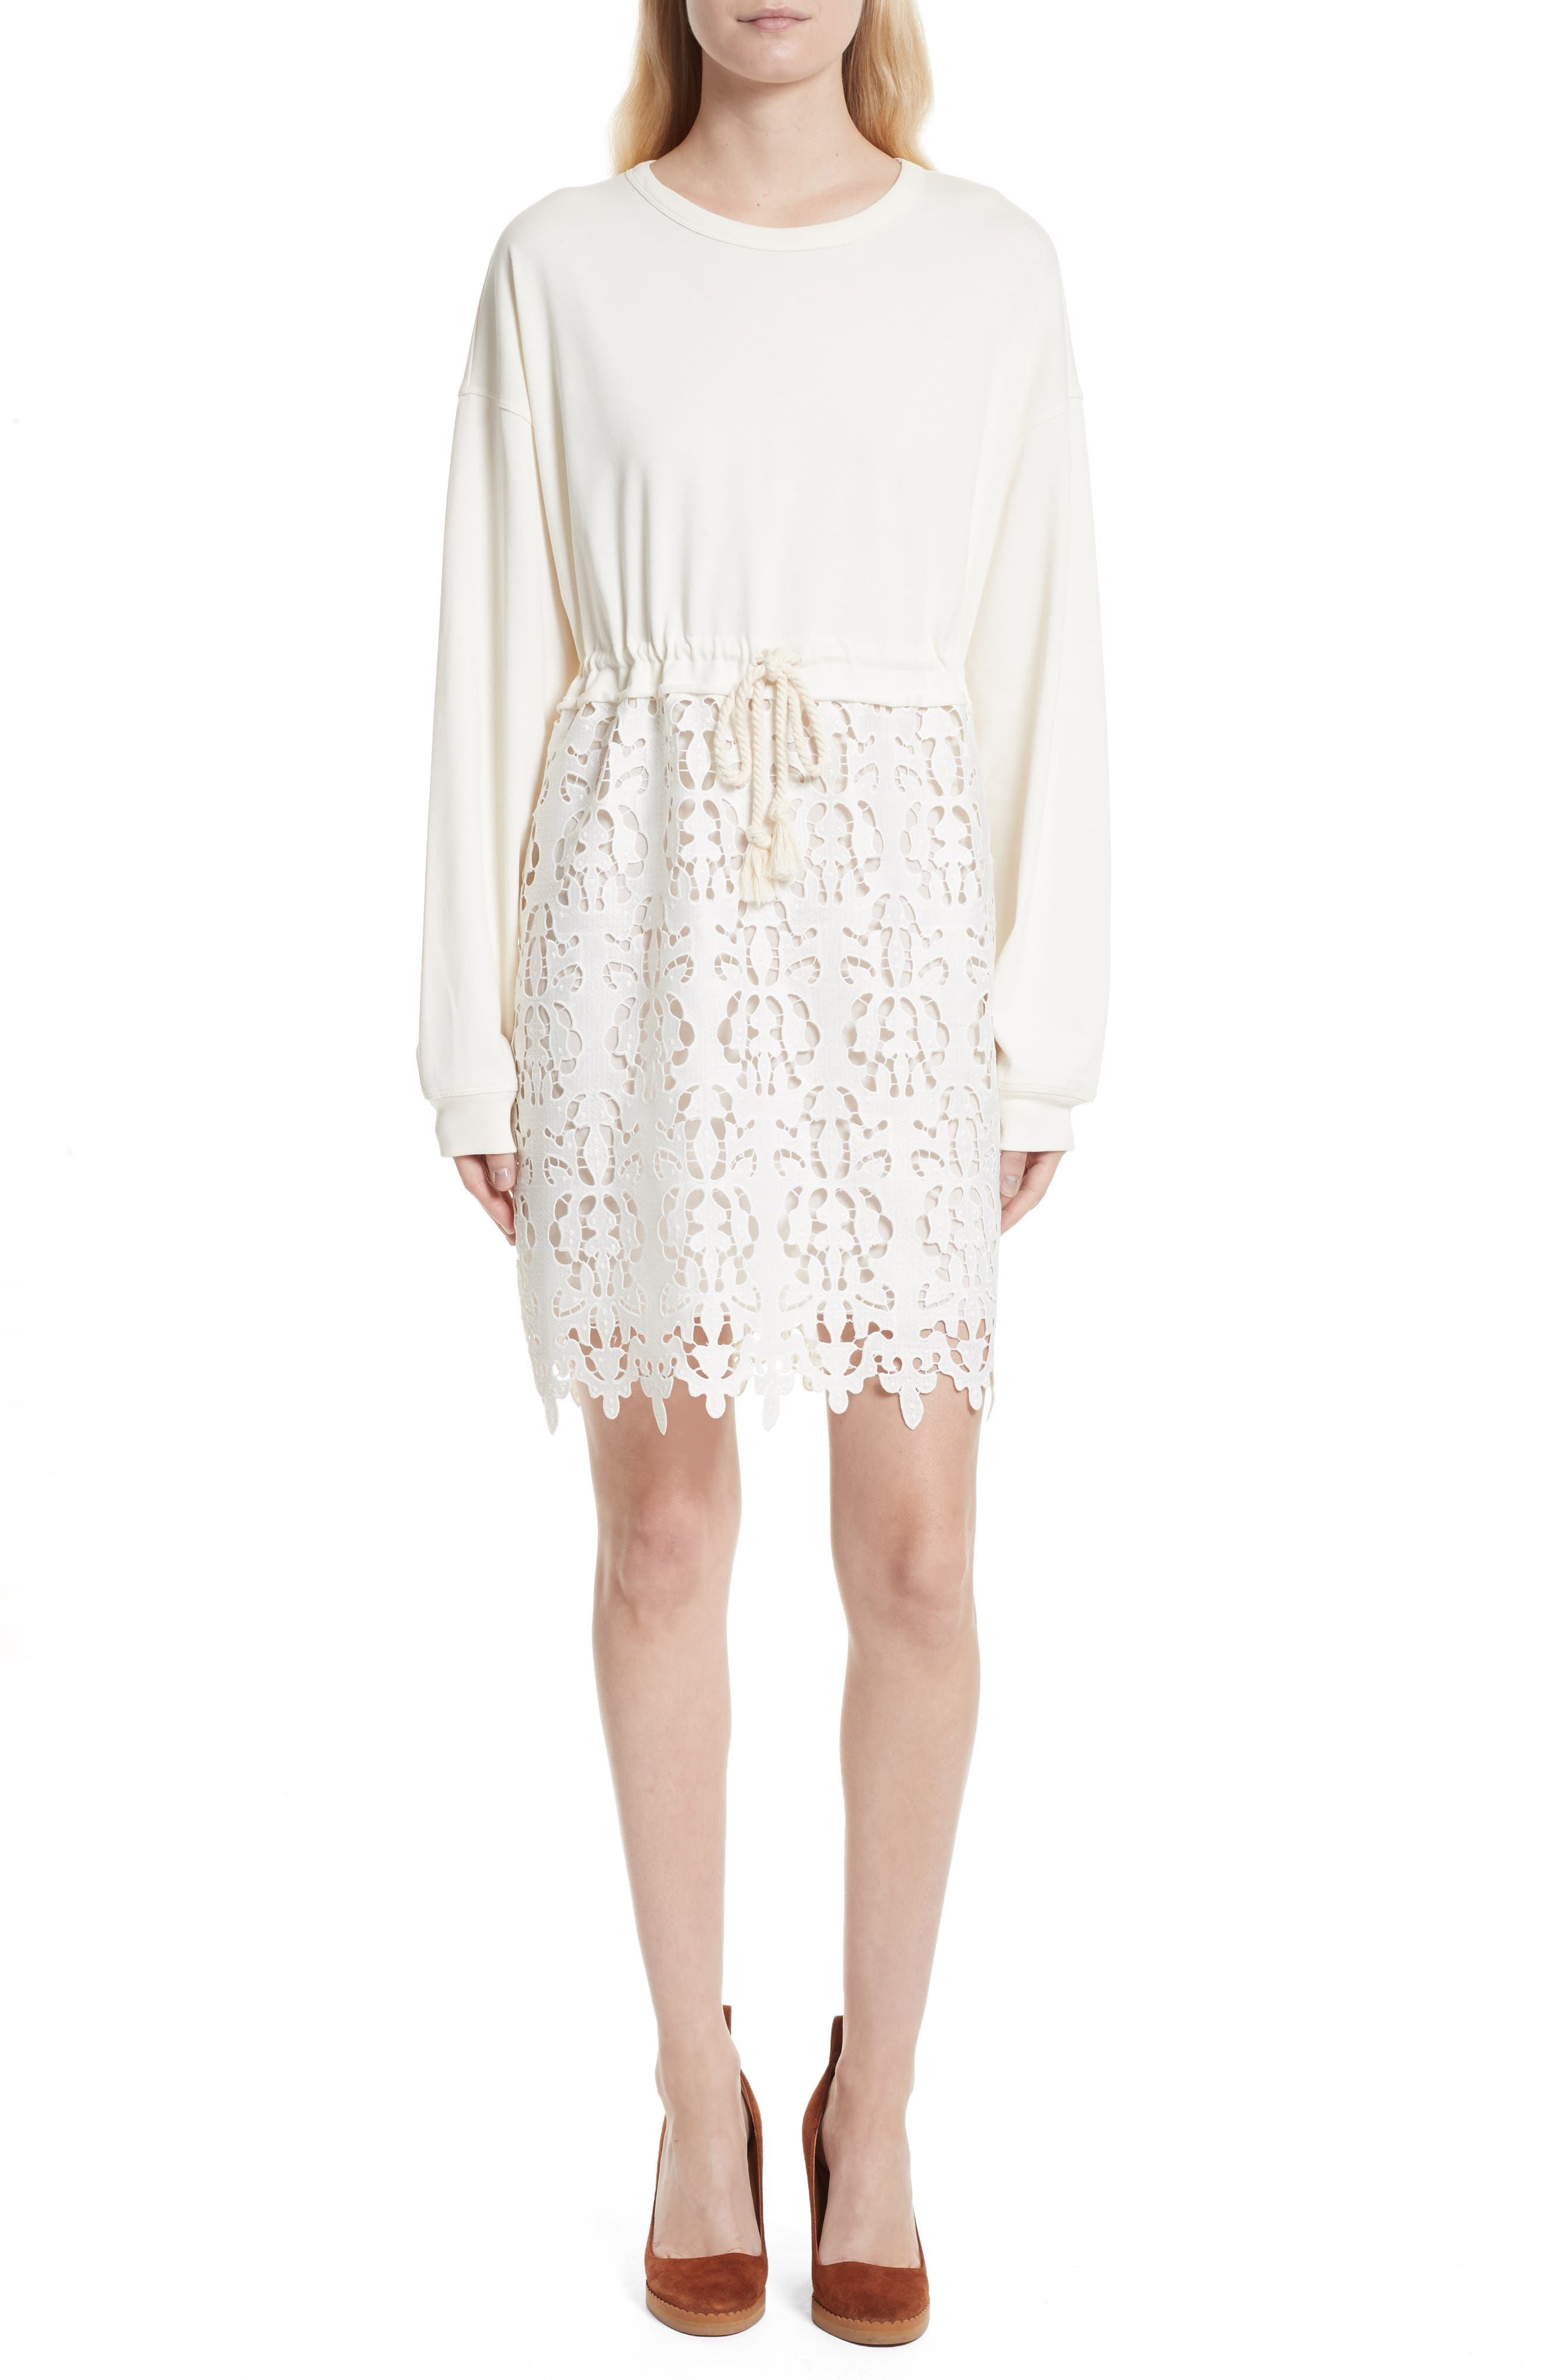 SEE BY CHLOÉ,                             Lace Skirt Sweatshirt Dress,                             Main thumbnail 1, color,                             101